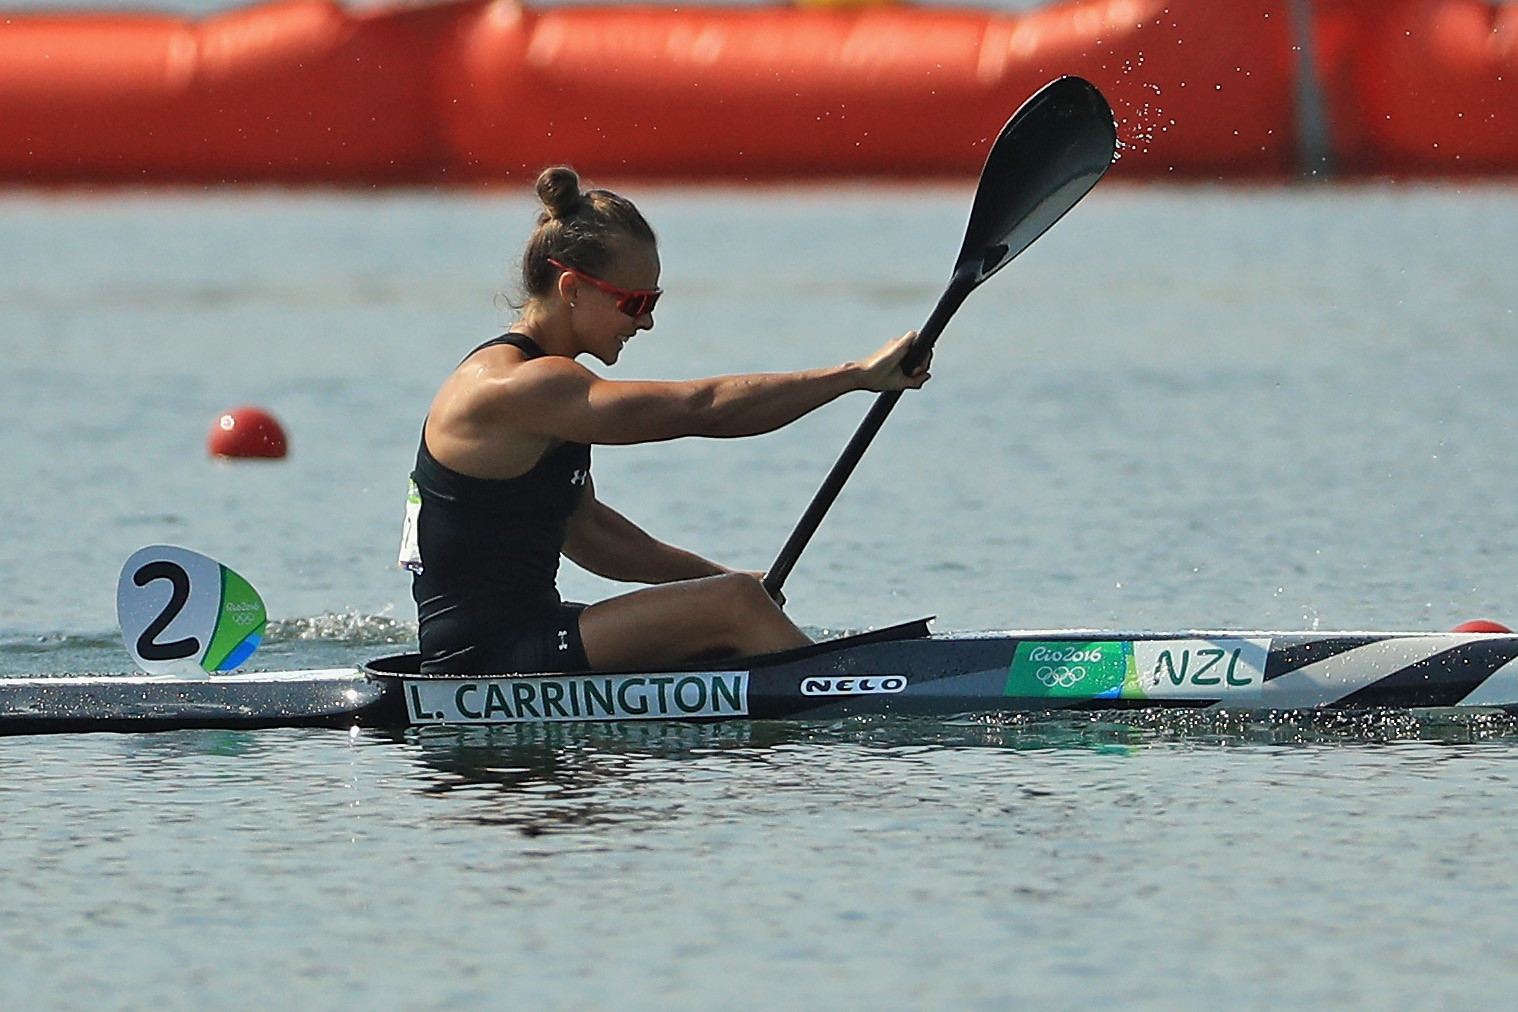 Olympic champion Carrington tops women's K1 200m heat at ICF Canoe Sprint World Cup